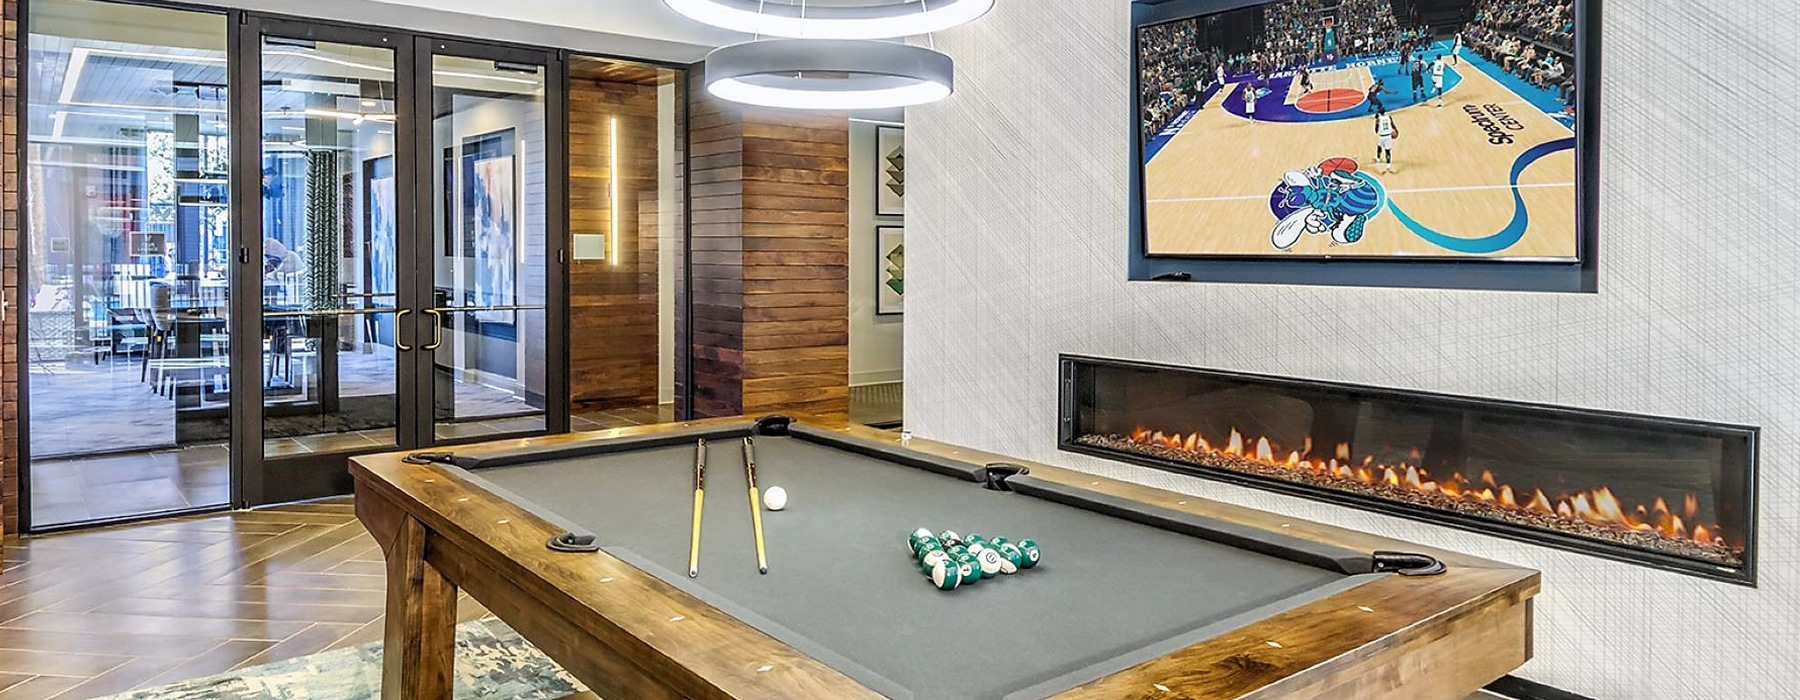 pool table in spacious game room with modern decor such as built-in fireplace in near wall